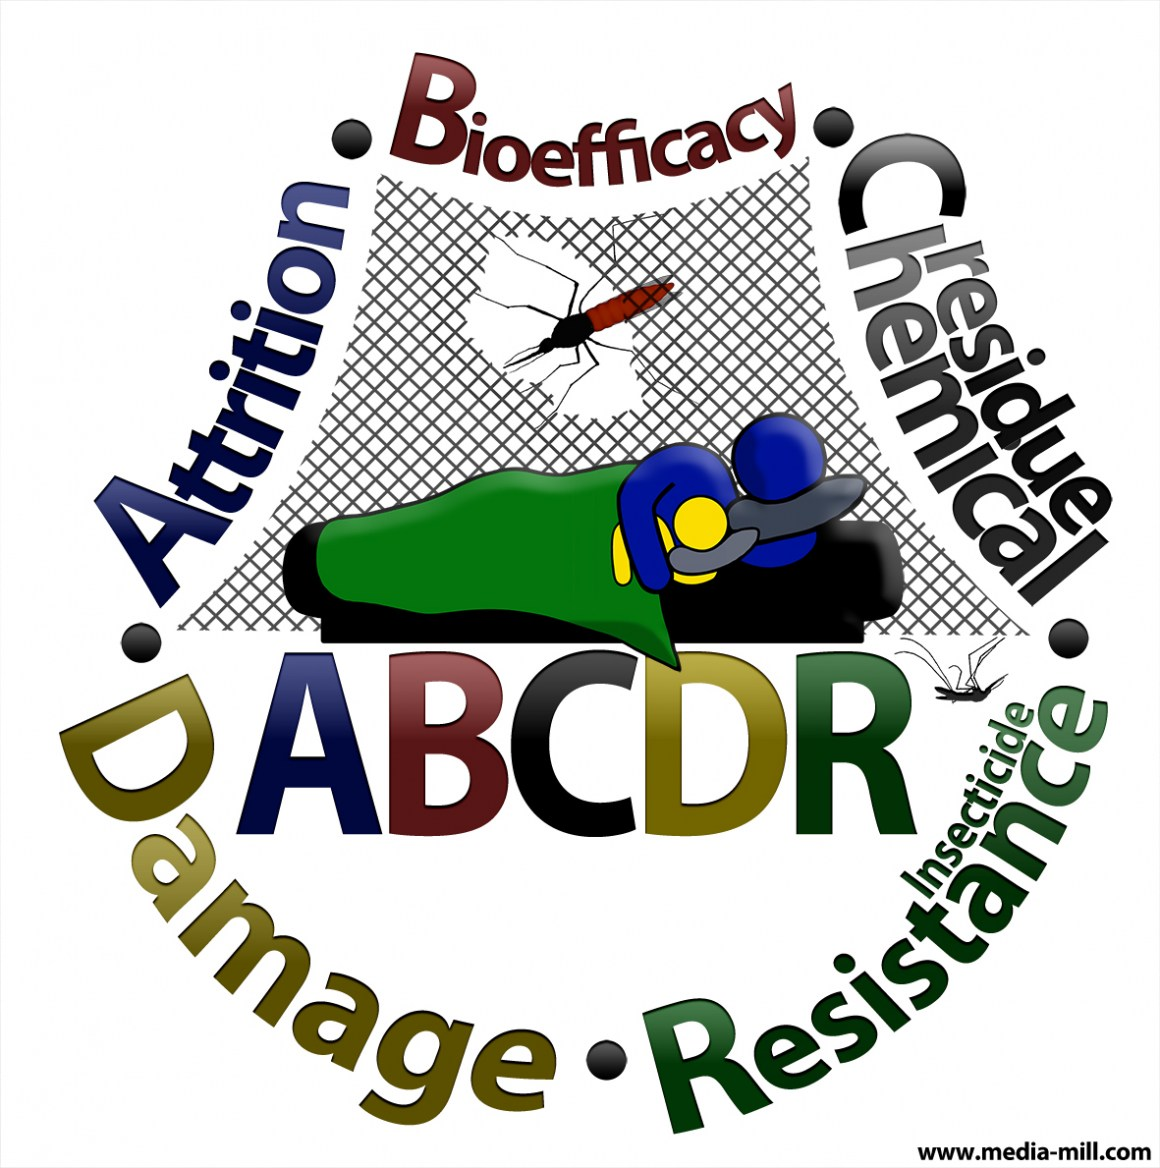 ABCDR logo